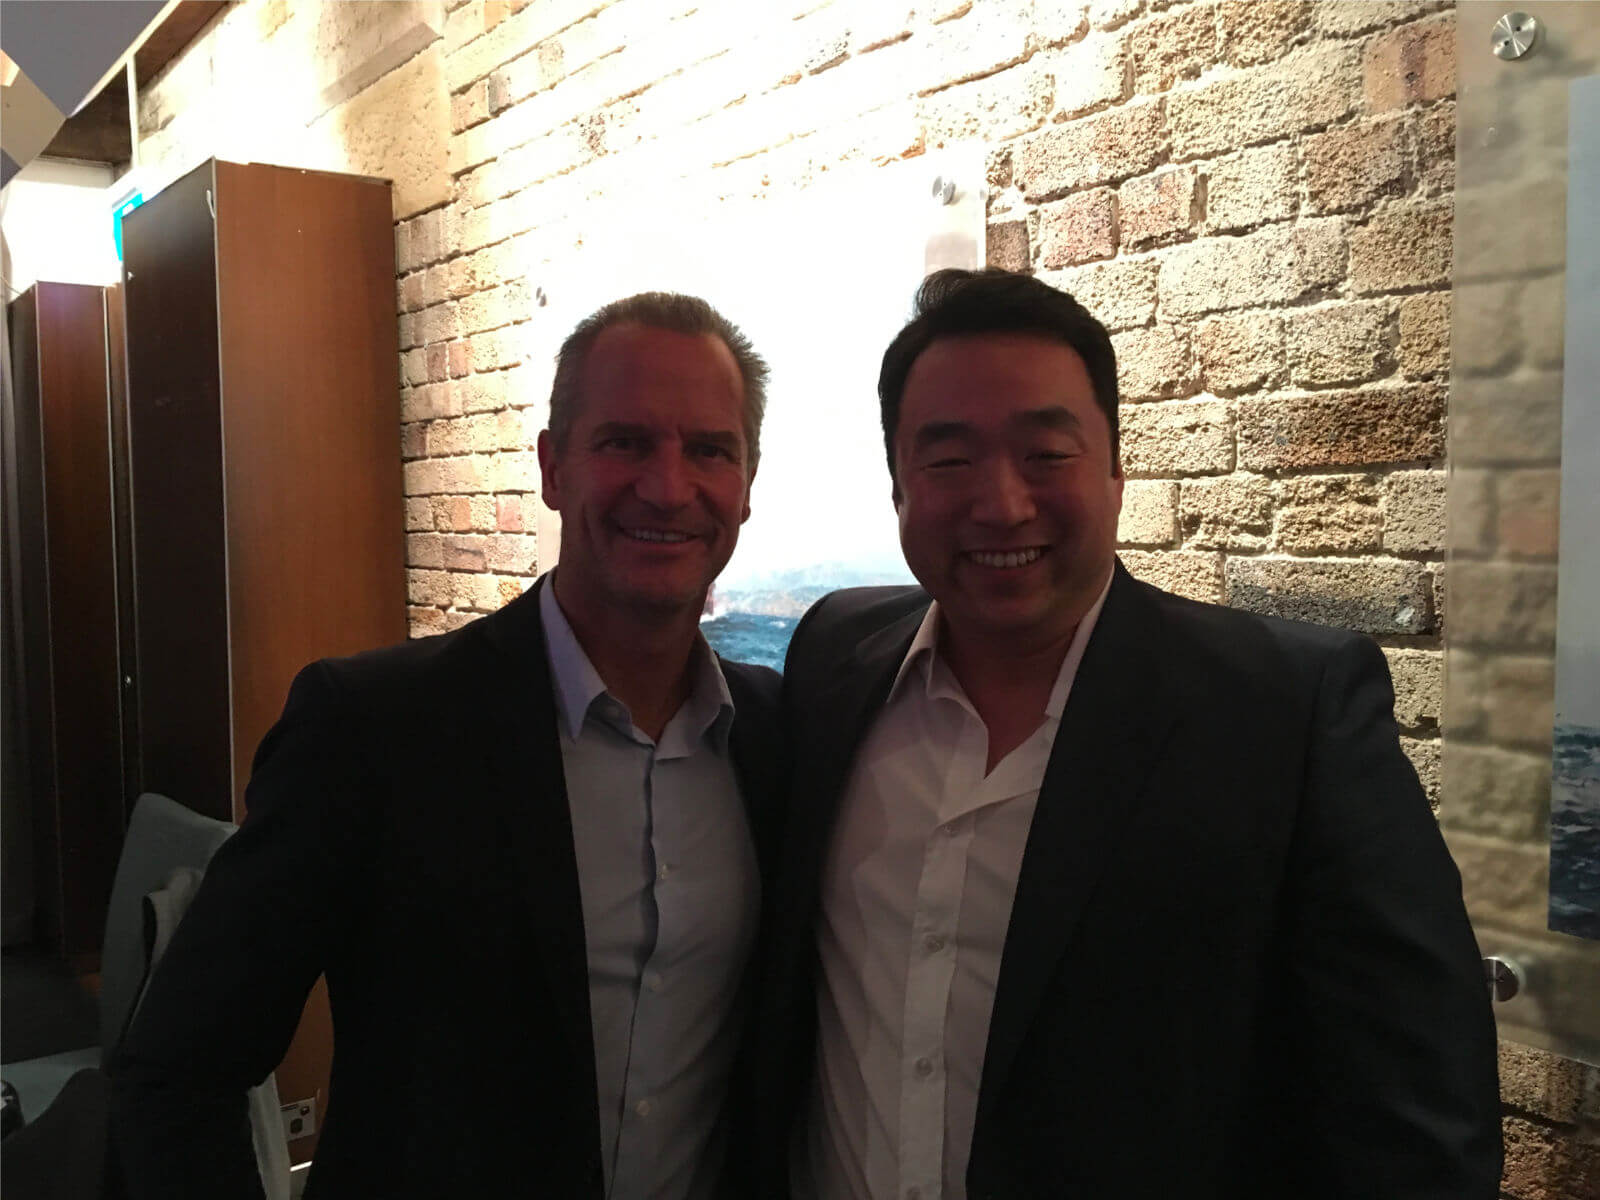 Mr Marco Gadola Current CEO of Straumann Implant system in Hills Dental Care